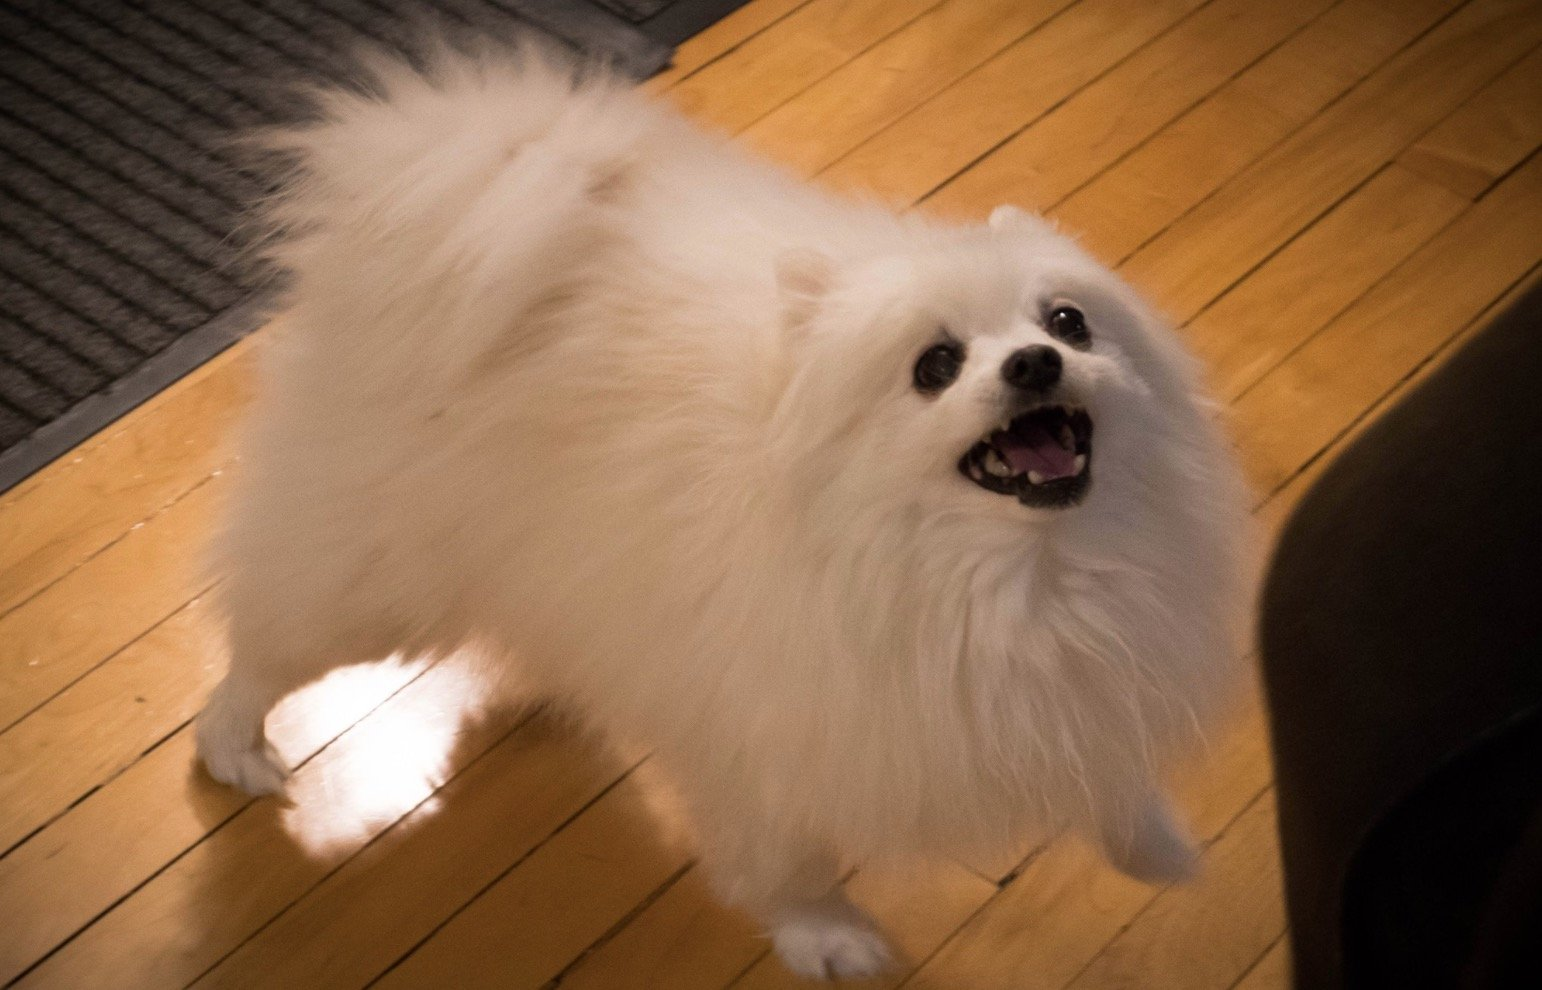 Gabe the dog was a miniature American Eskimo/Pomeranian mix who became an internet meme sensation after his owner posted videos of him barking.